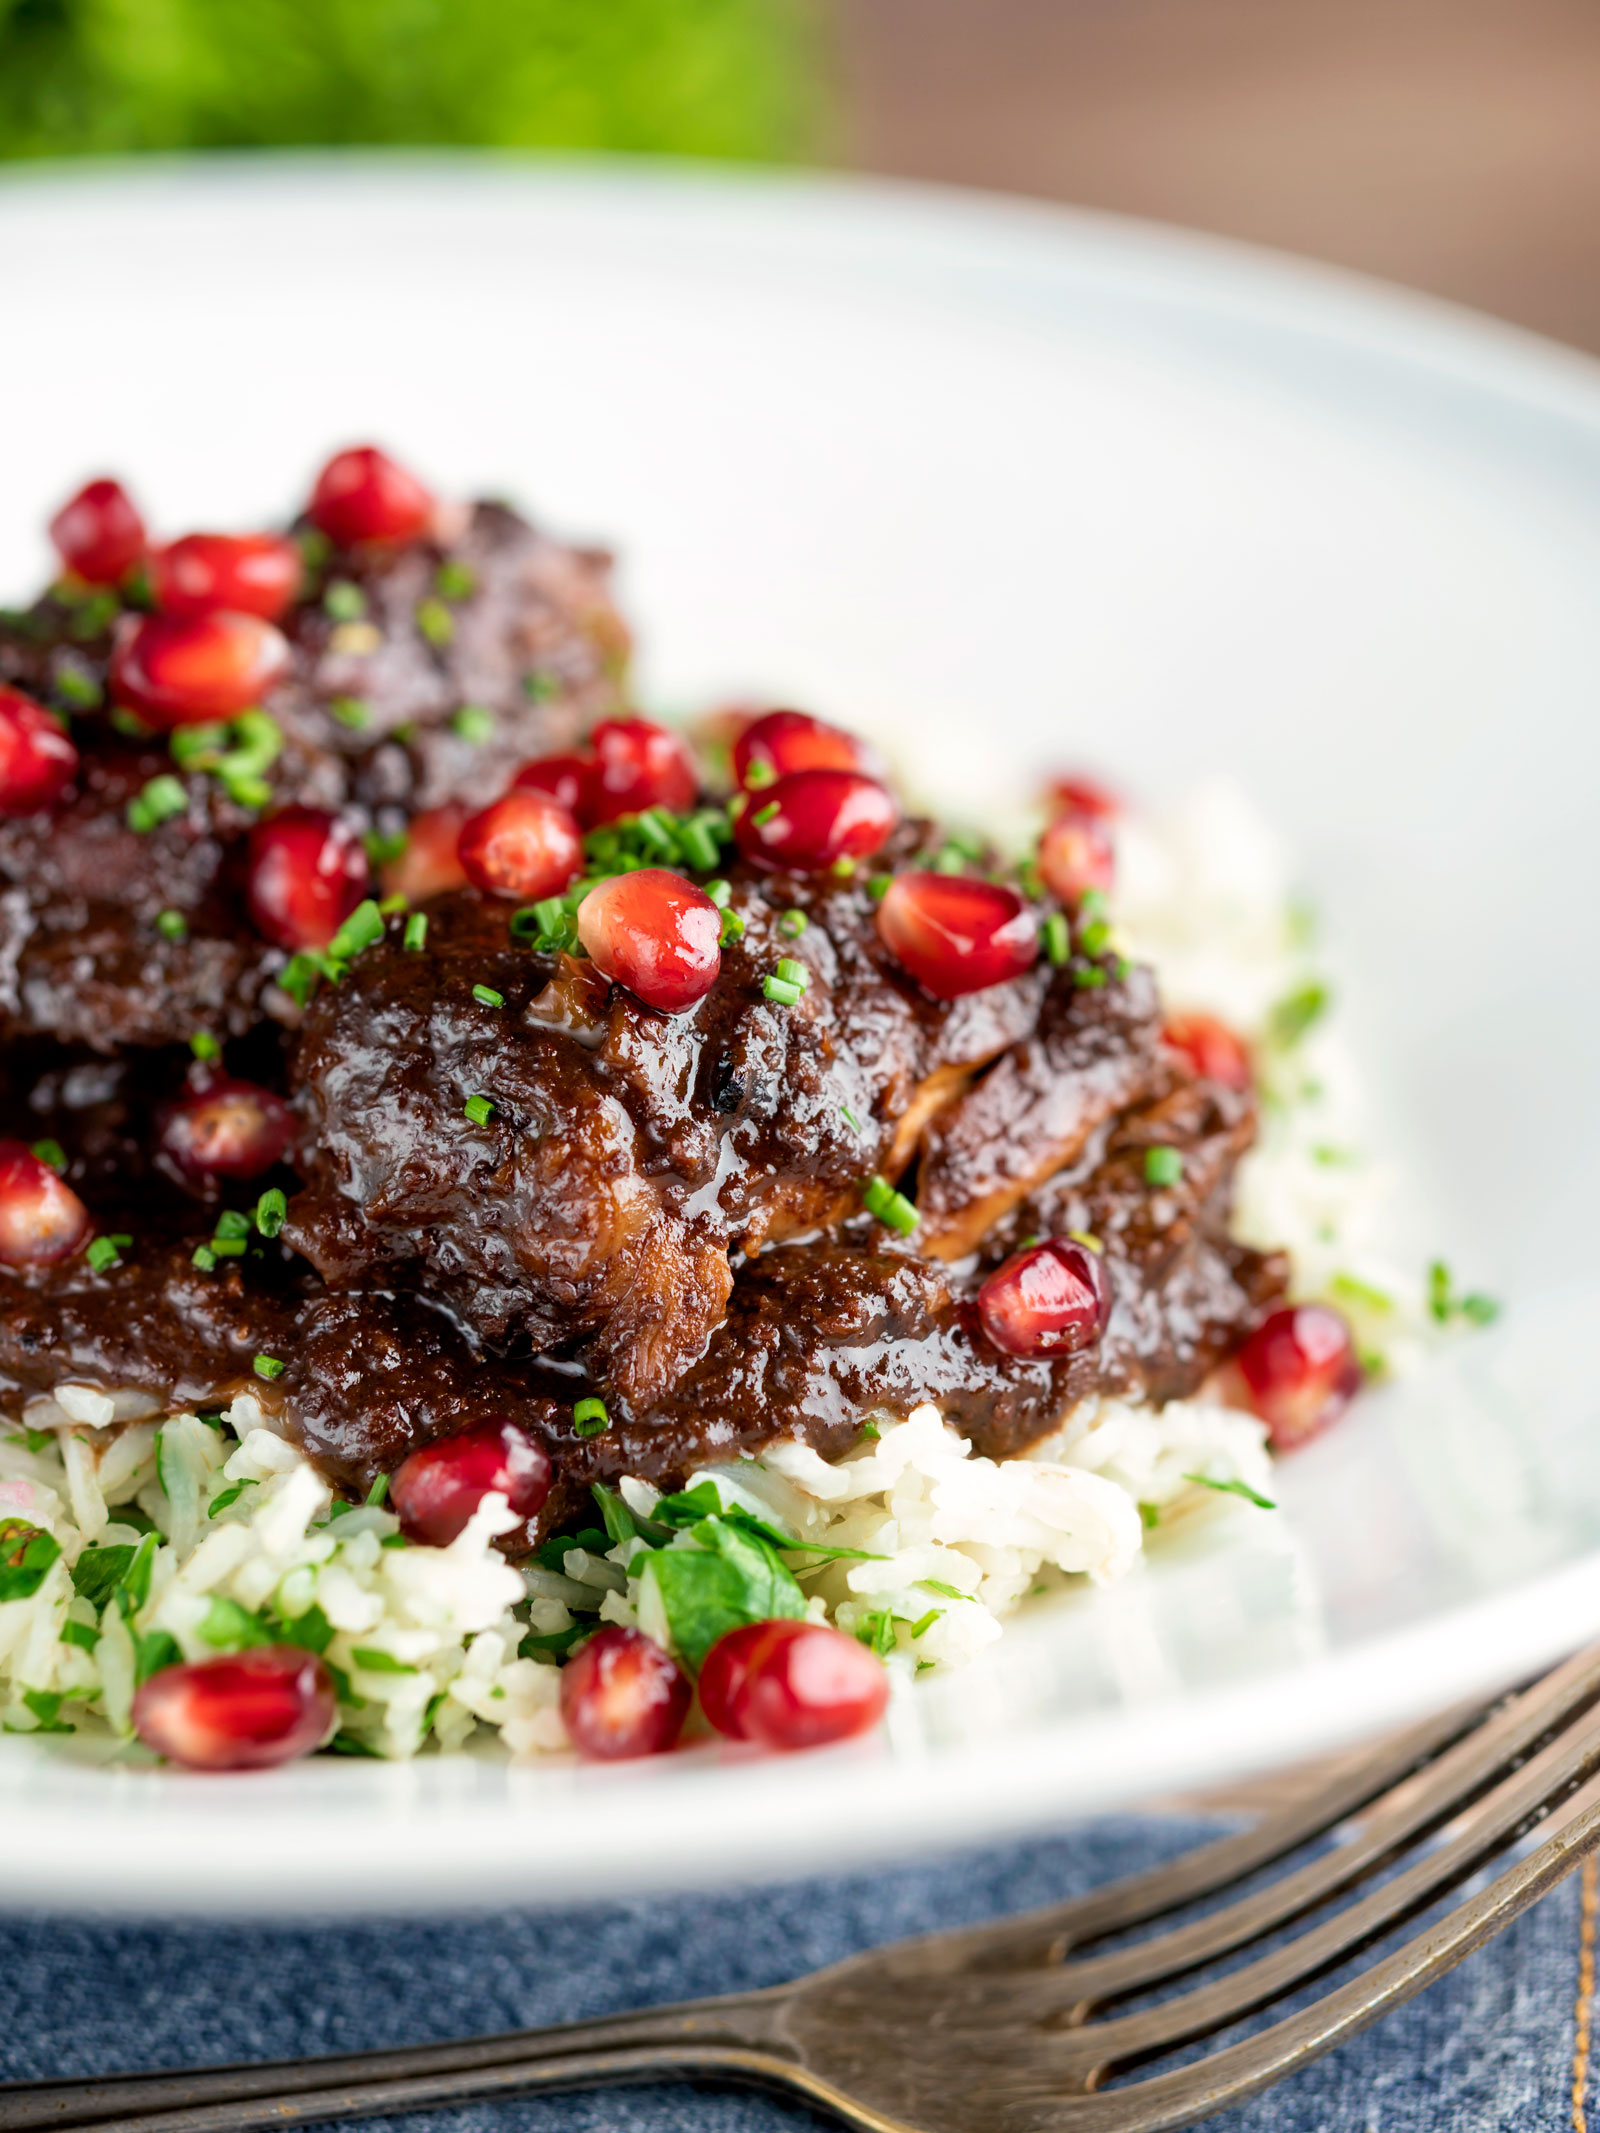 Iranian fesenjan chicken thigh stew with pomegranate served on herbed rice.